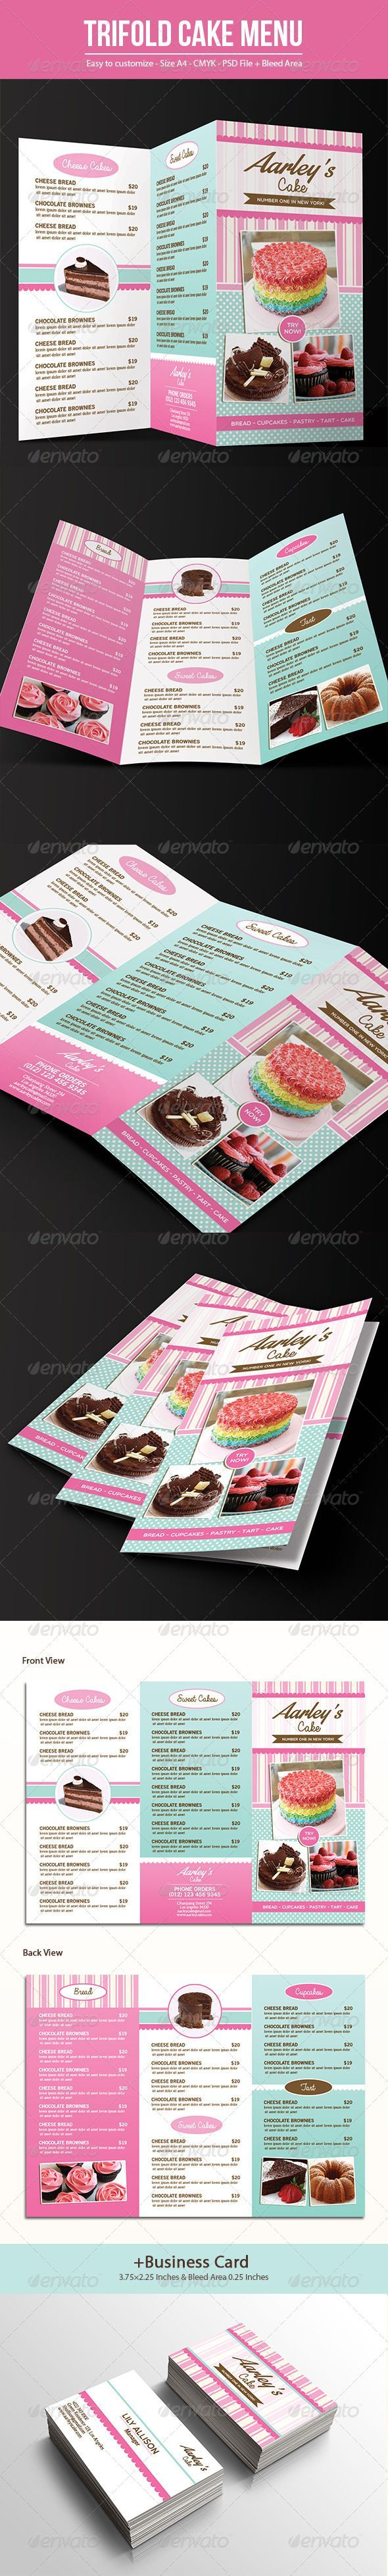 Trifold cake menu business card pinterest menu business cards trifold cake menu business card template design speisekarte download graphicriver flashek